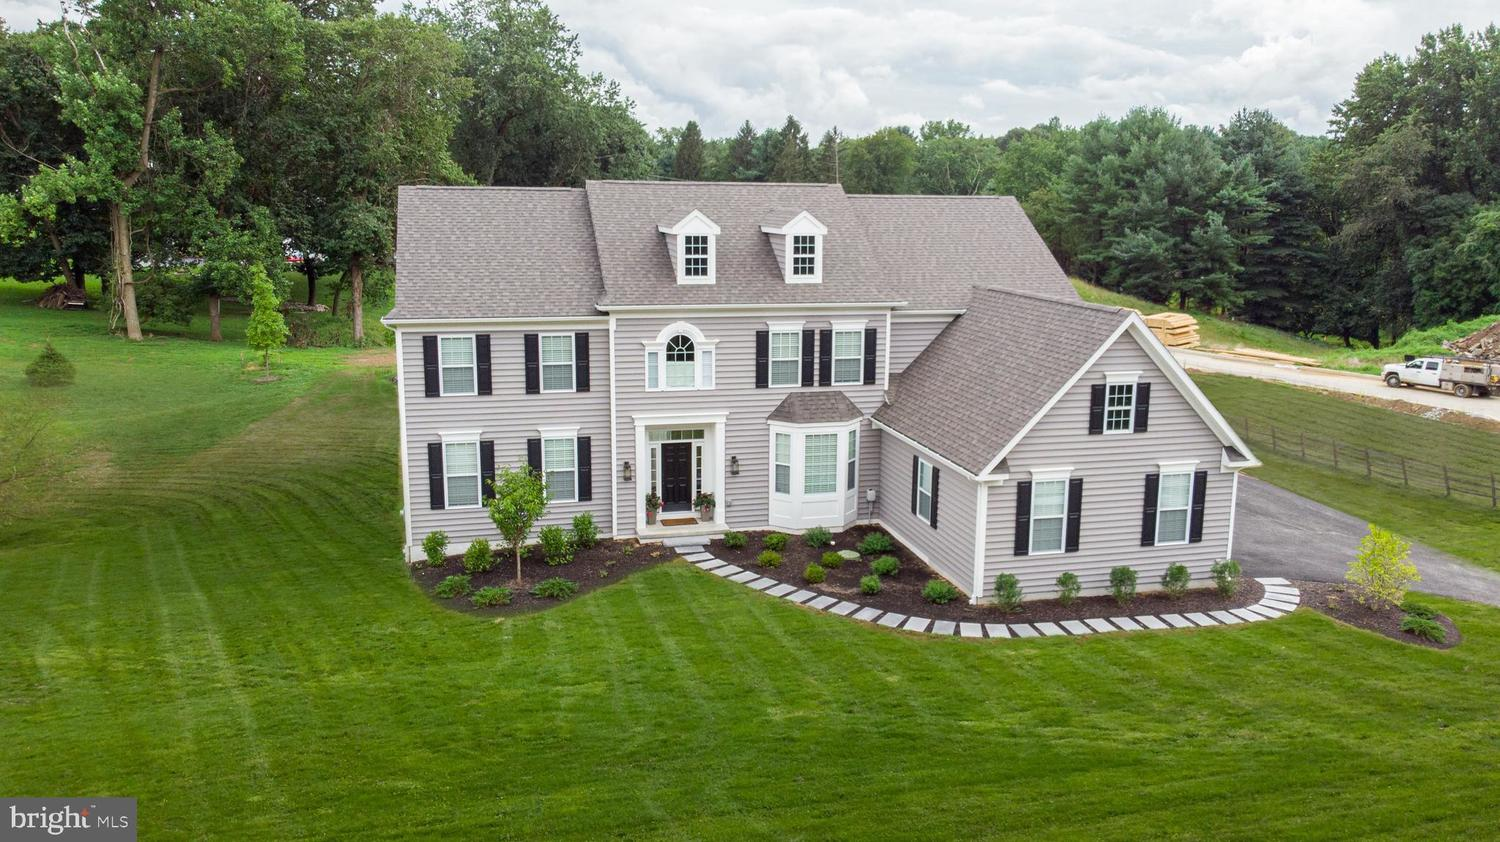 114 Piper Lane West Chester, PA 19382